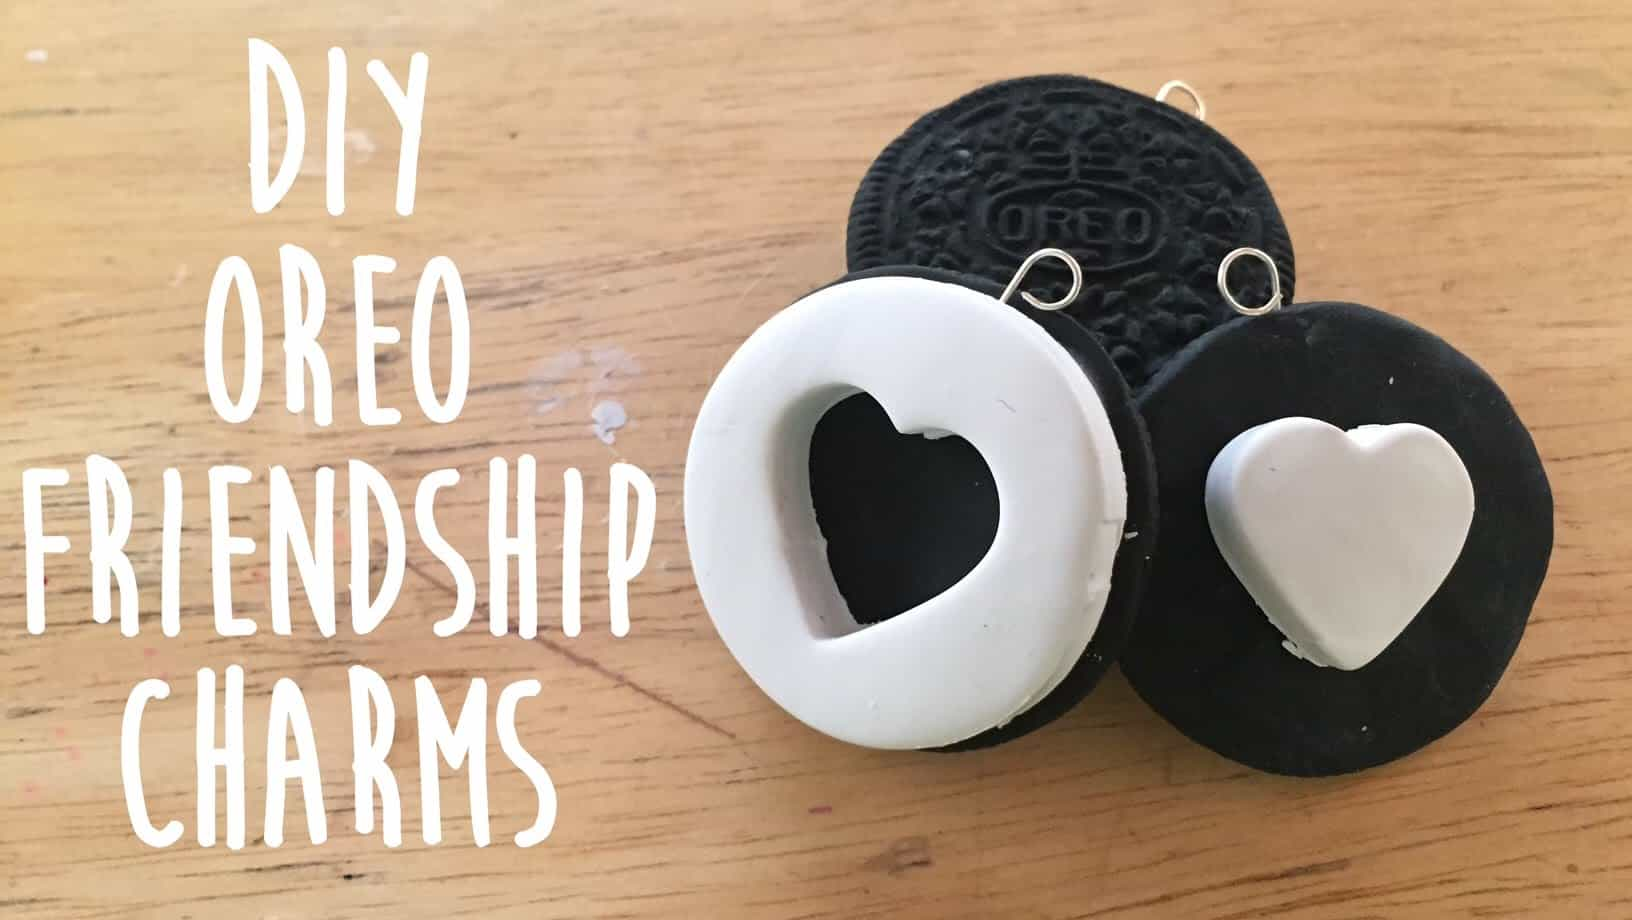 Oreo friendship charms